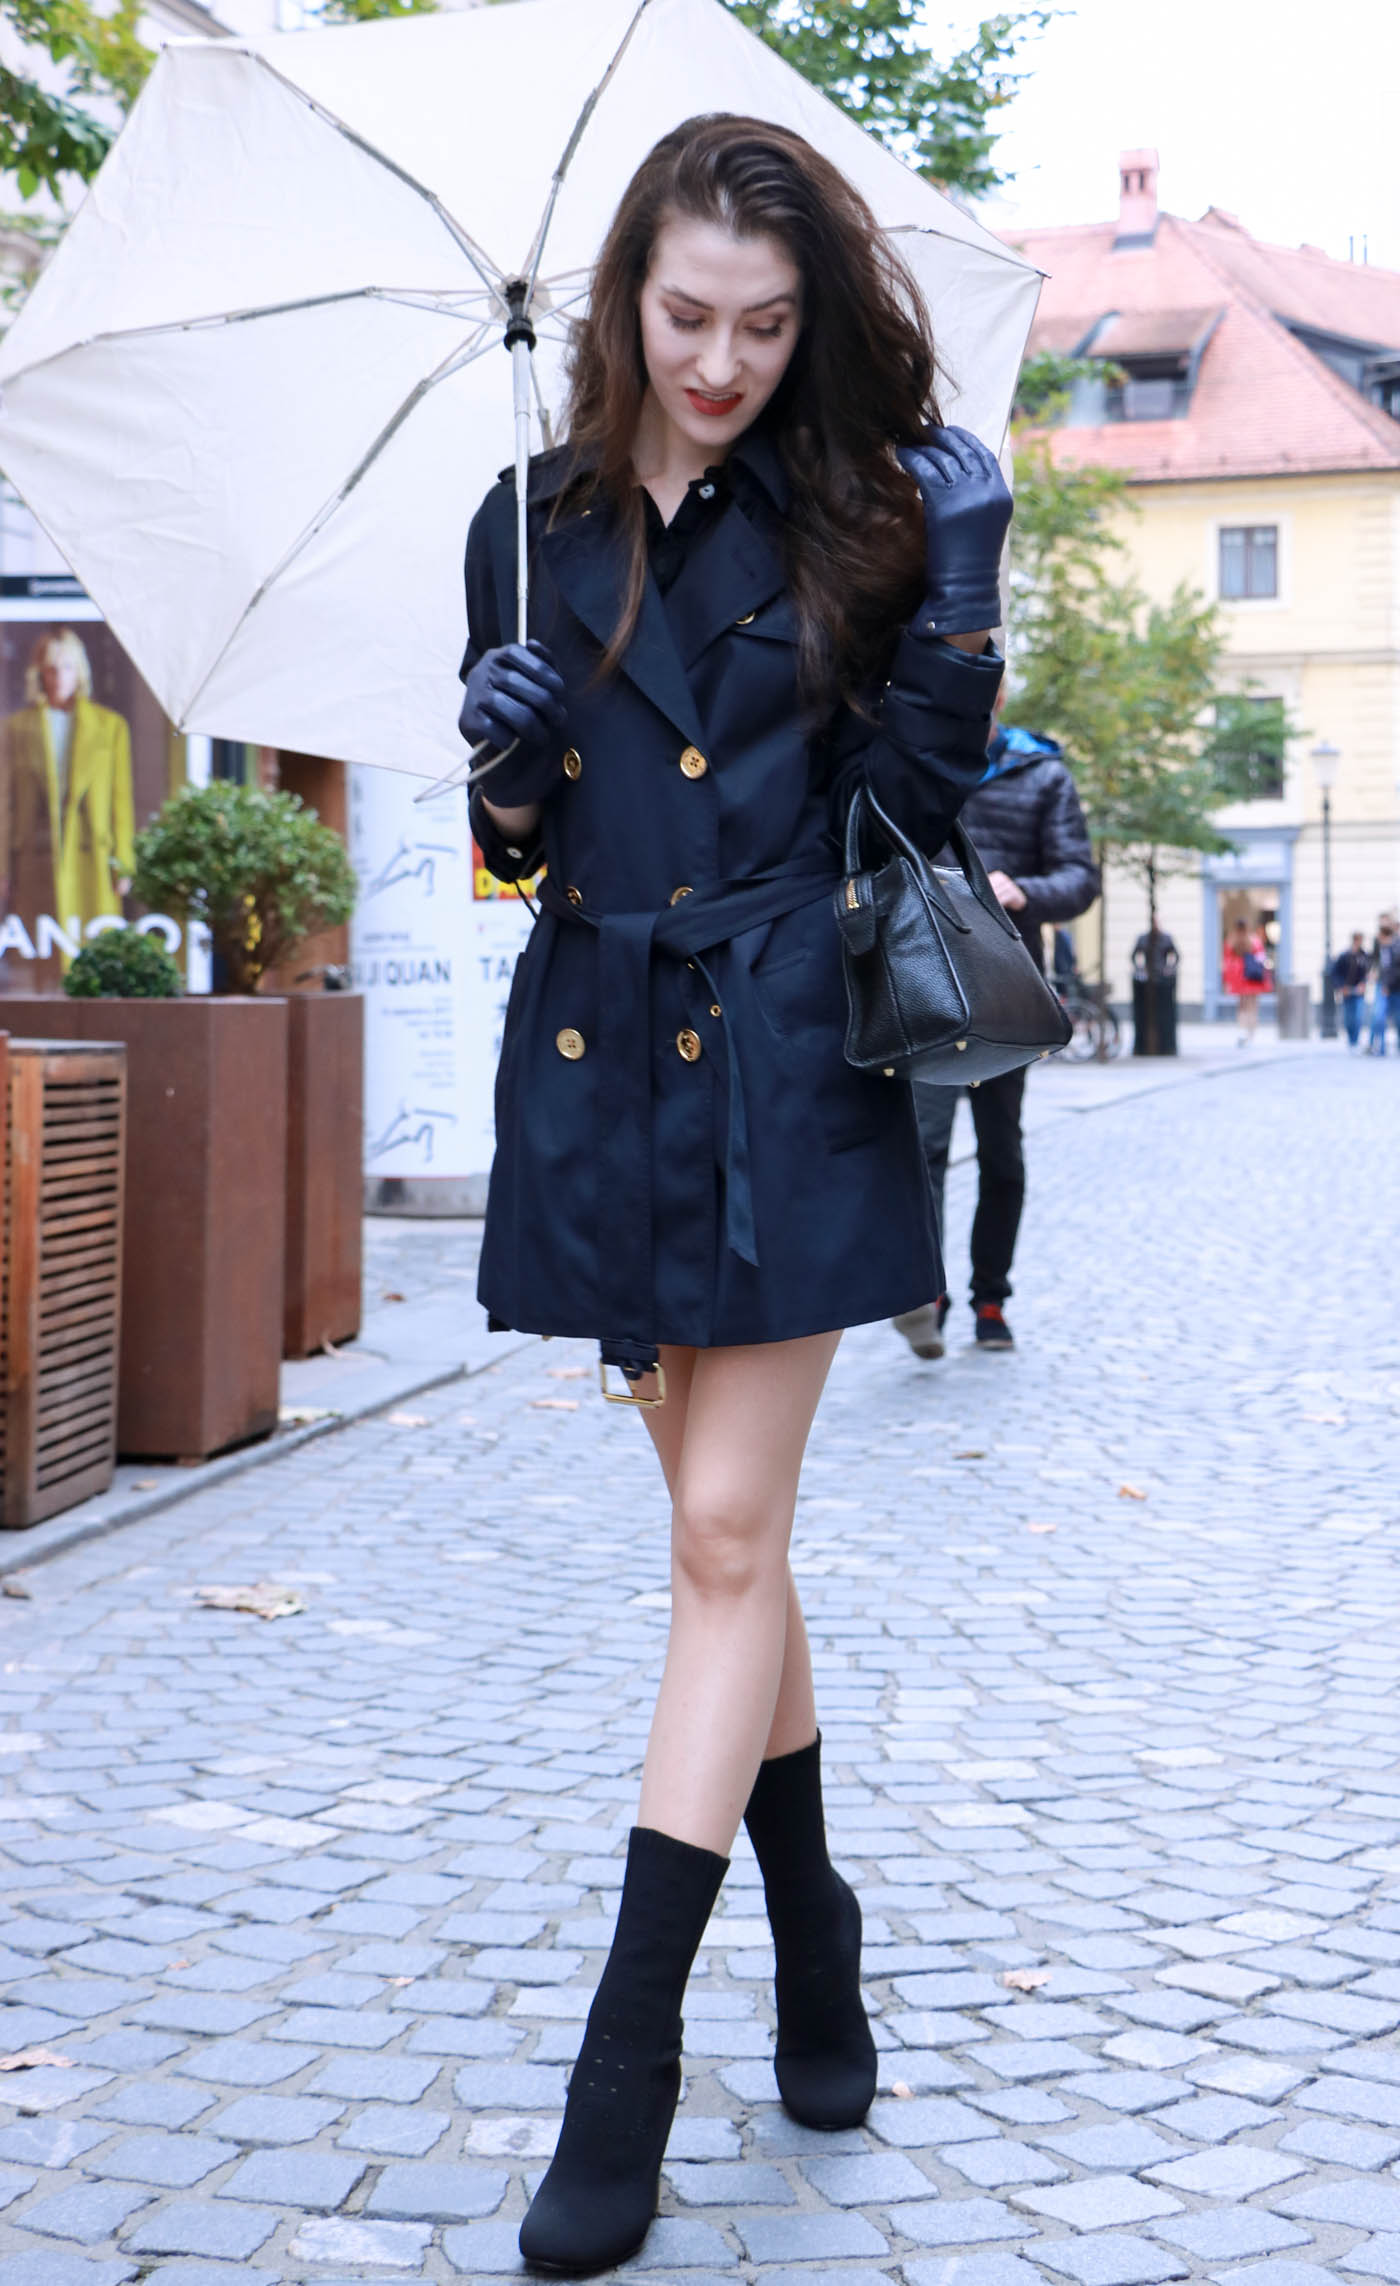 Fashion Blogger Veronika Lipar of Brunette from Wall Street wearing blue trench coat and ankle boots on a rainy day